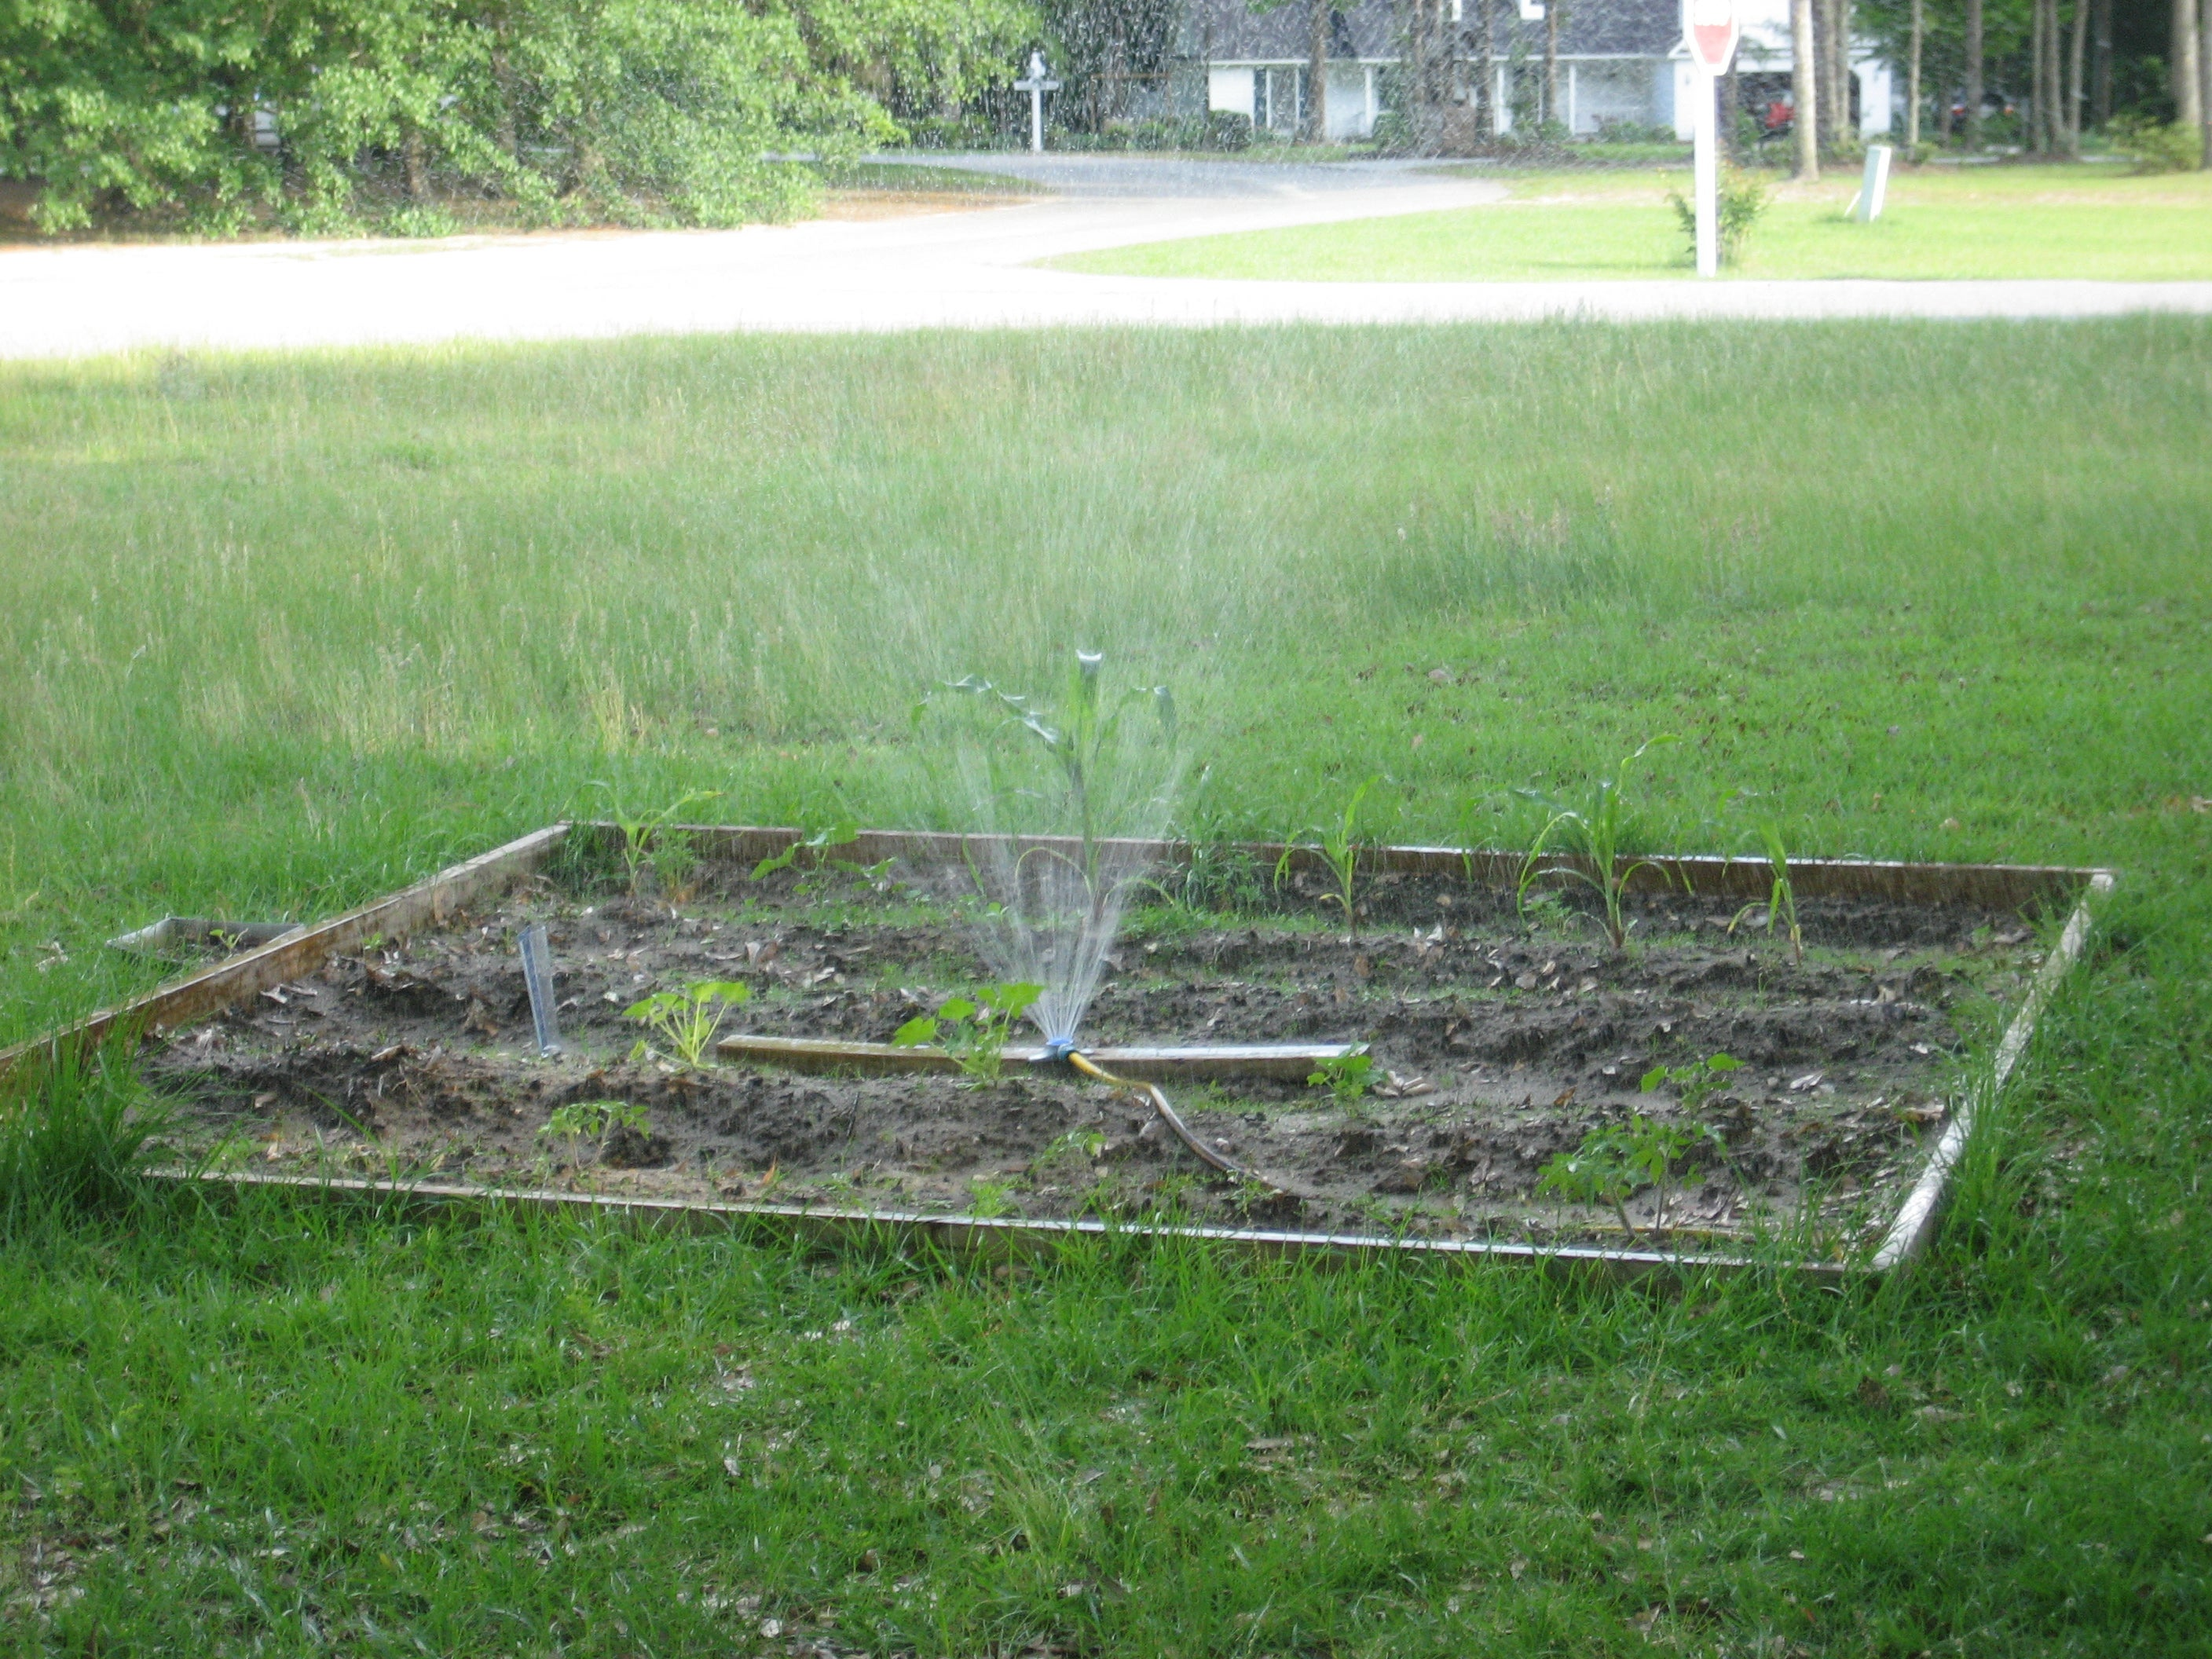 How To Make A Linux Powered Garden Sprinkler System 7 Steps With Pictures Instructables